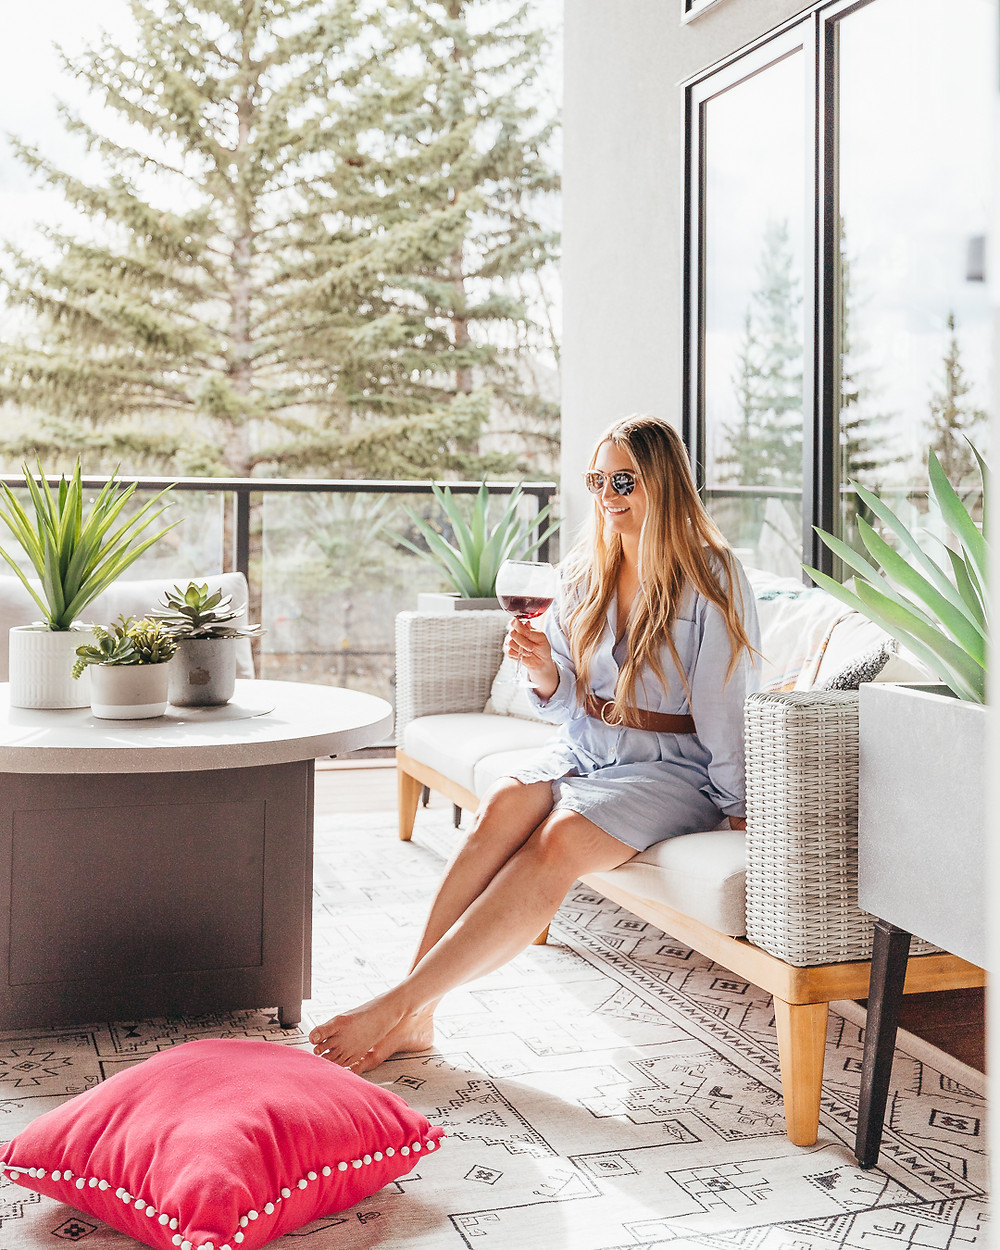 A girl sitting on a modern outdoor patio sofa holding a glass of red wine next to a fire table and a pink outdoor cushion on a white and black area rug in the summer.